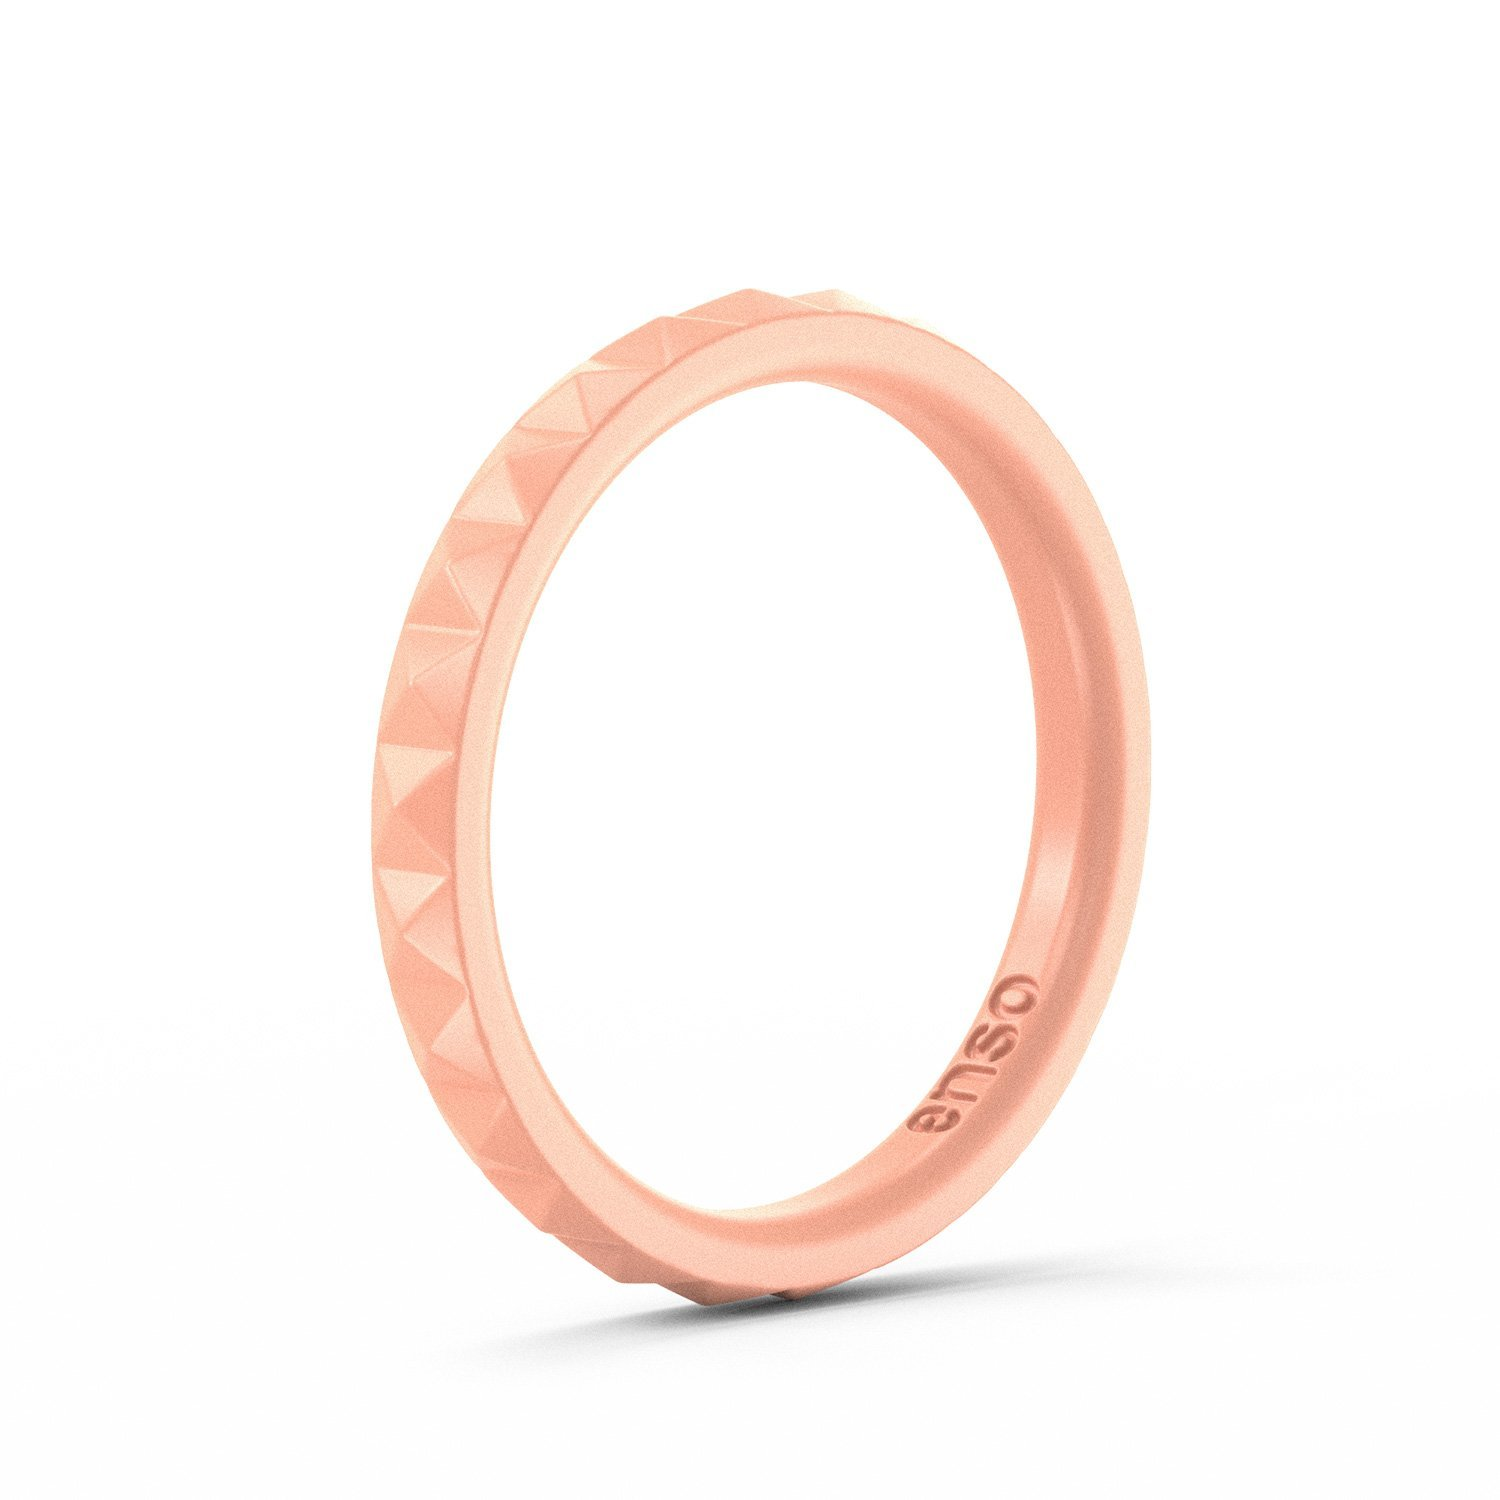 Silicone Wedding Rings Where to Buy the Best Silicone Rings Cheap